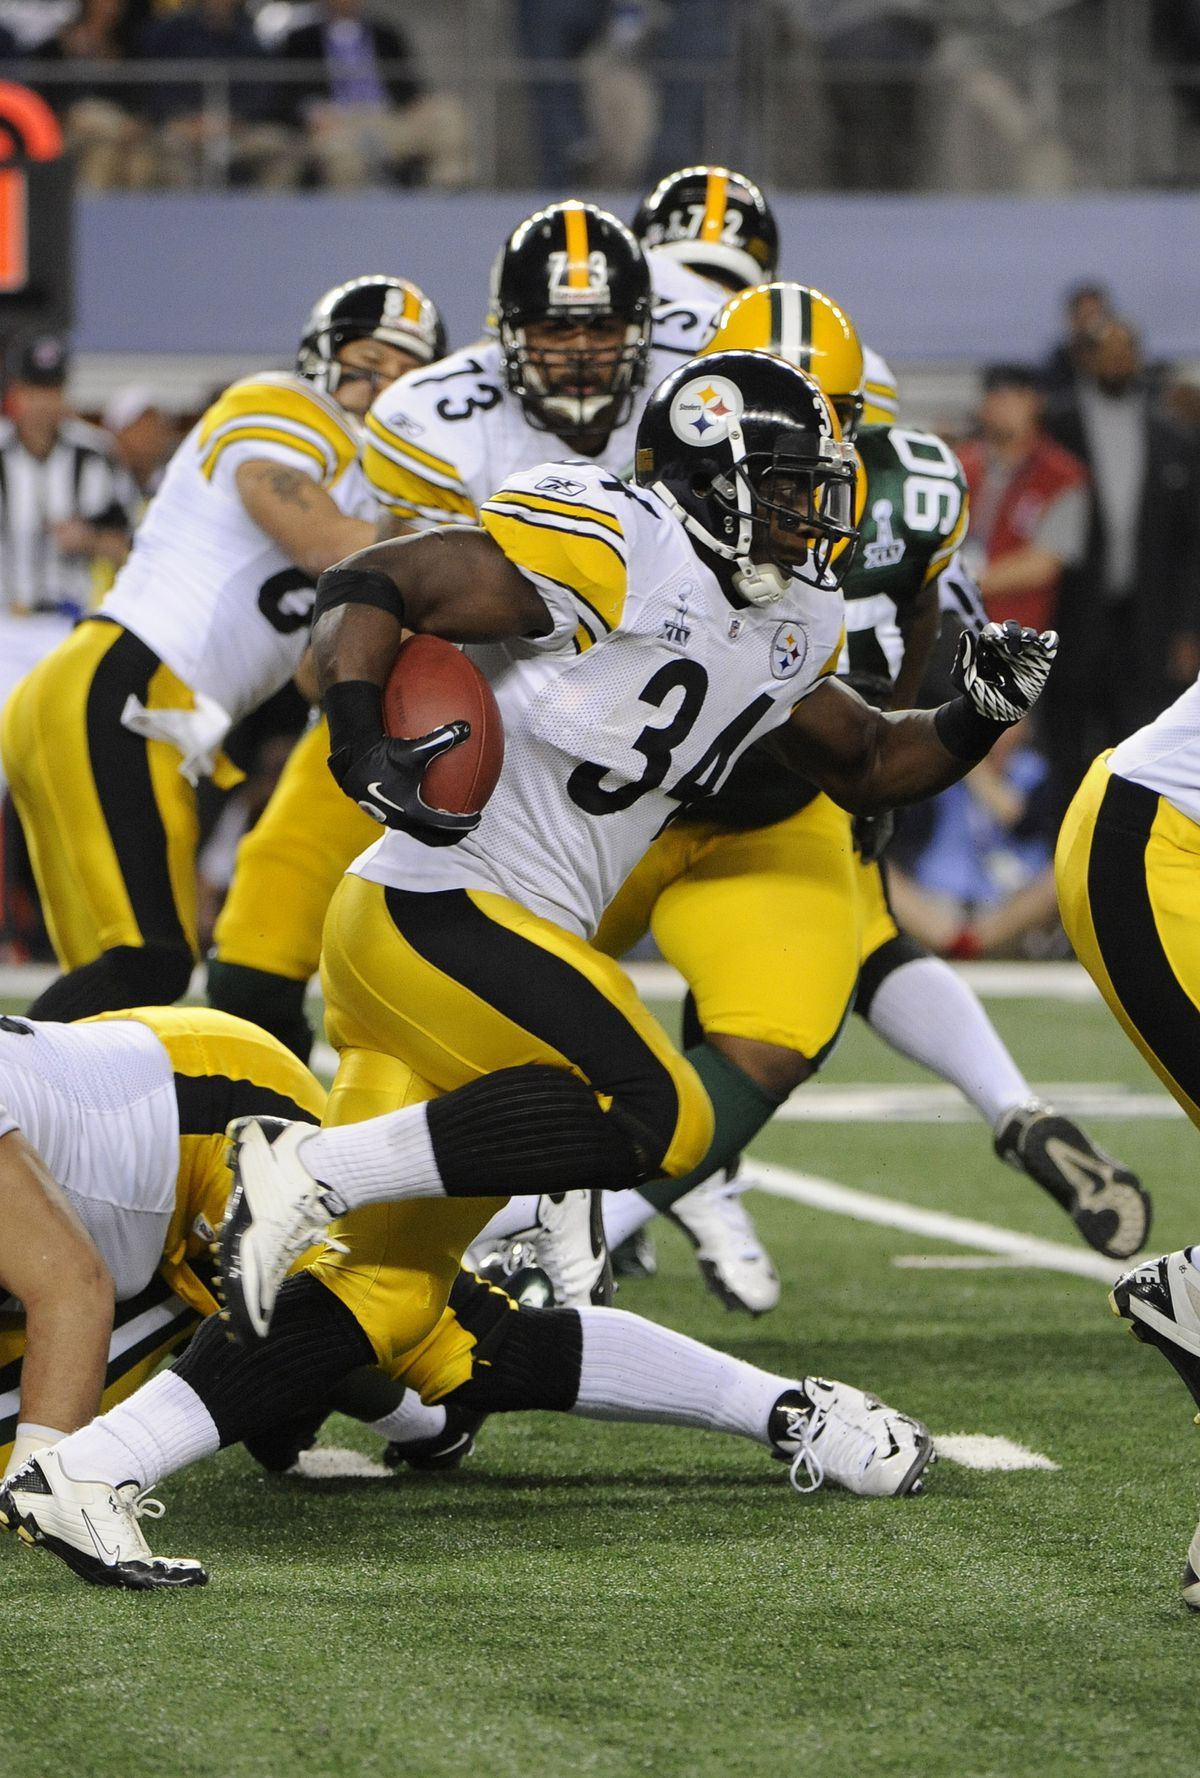 Super Bowl XLV - Pittsburgh Steelers v Green Bay Packers